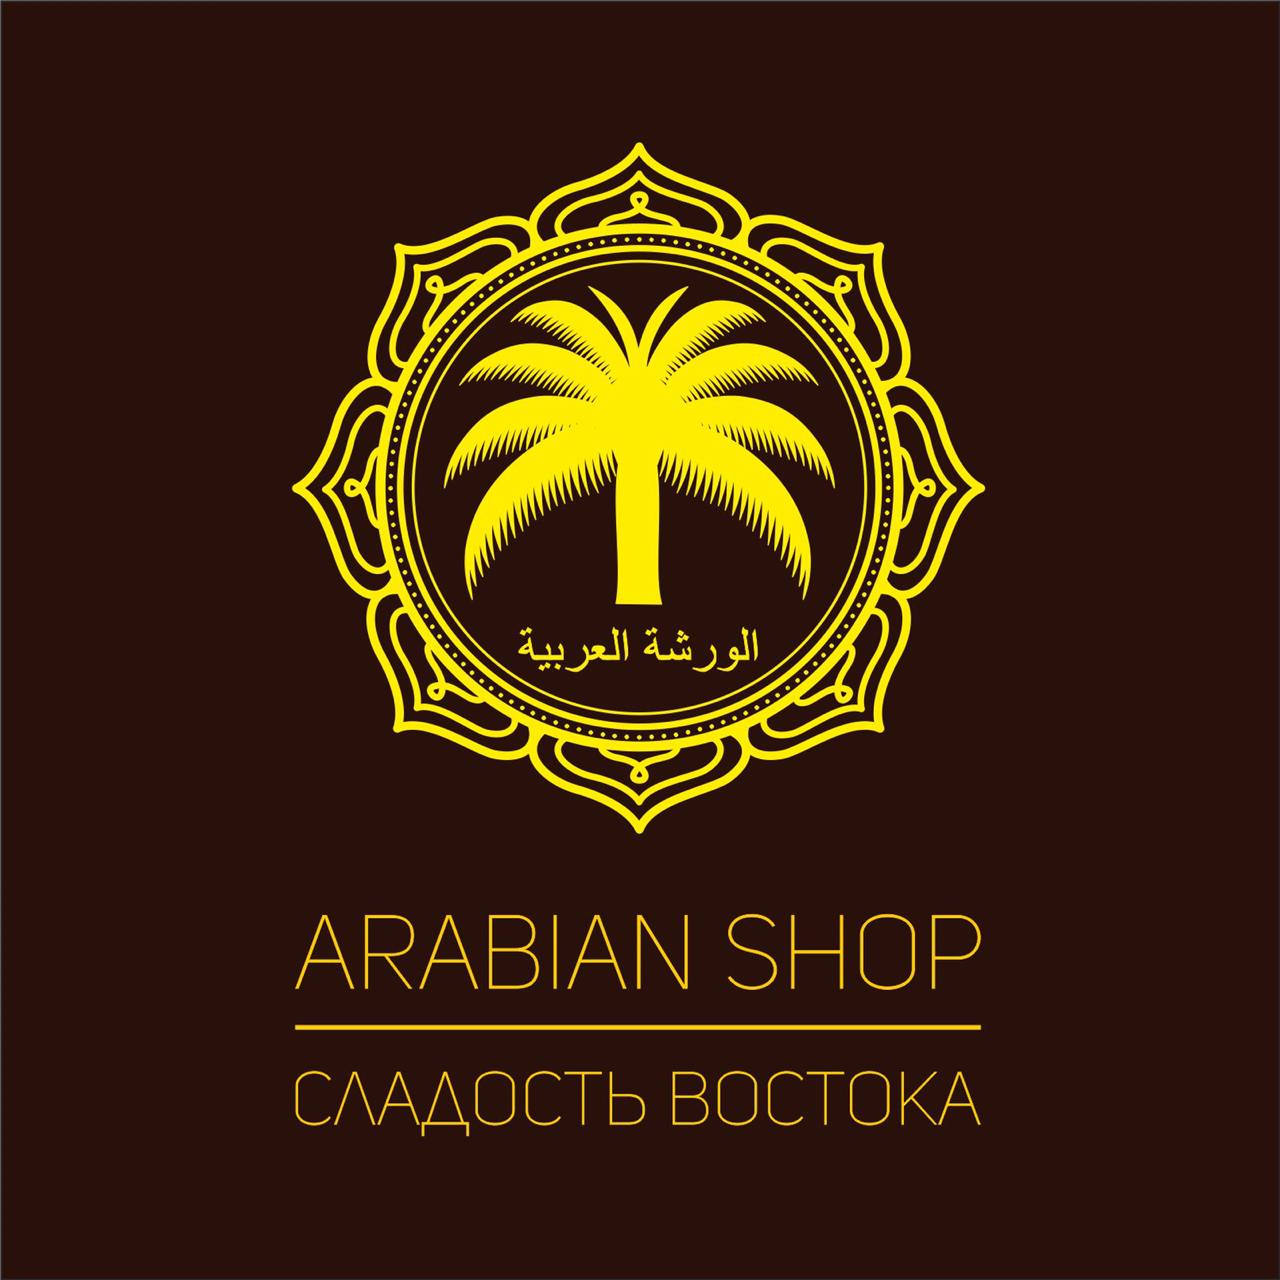 Arabian Shop